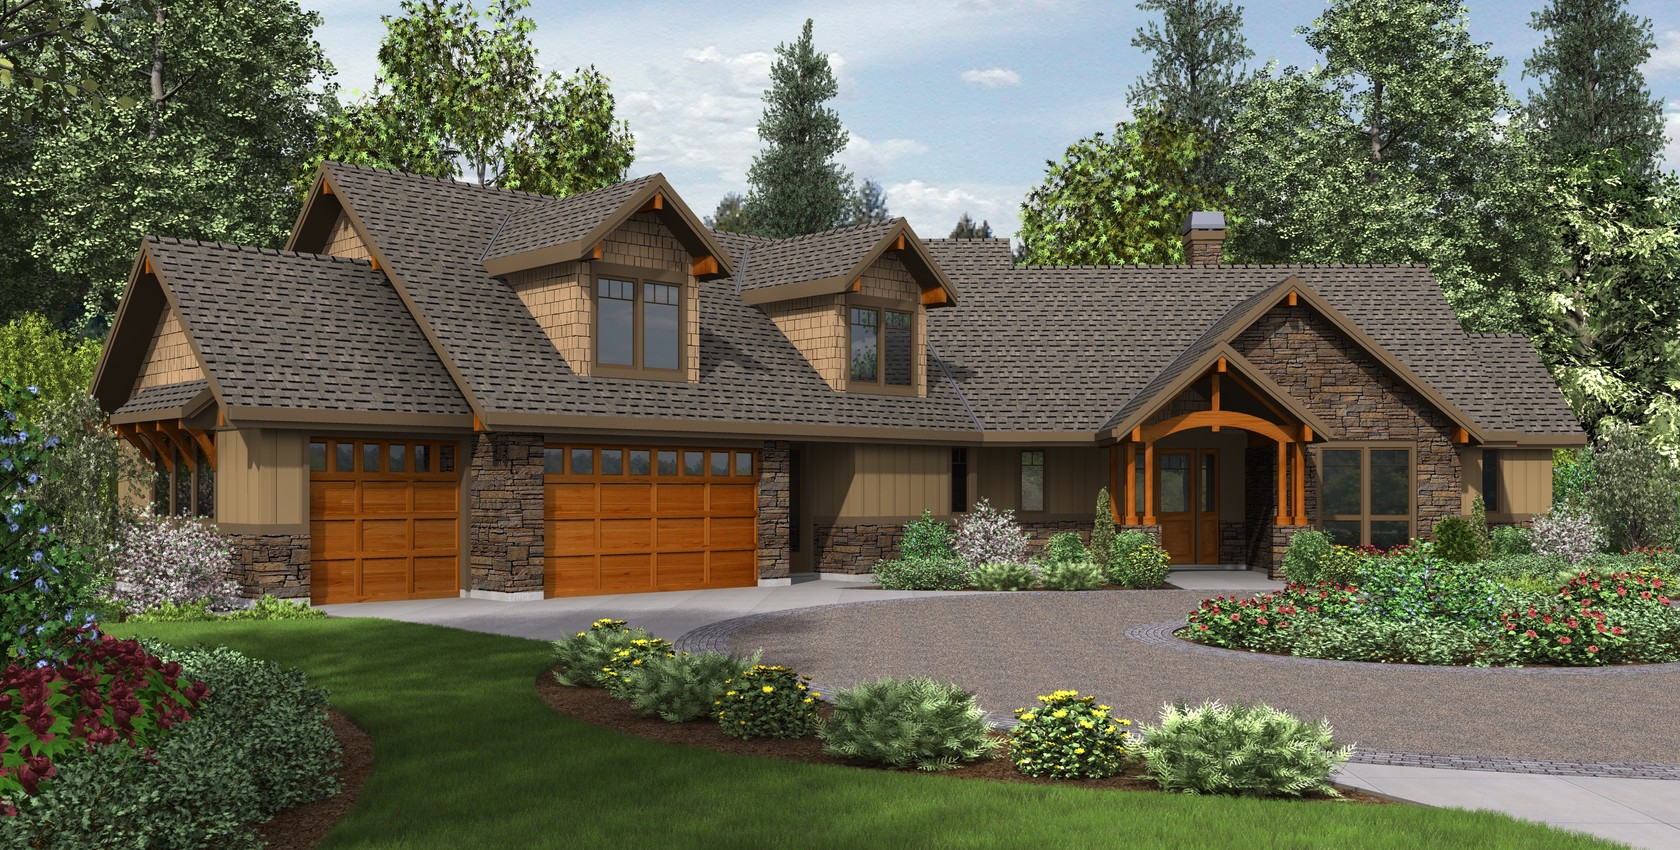 Mascord house plan 22190 the silverton for Home designs northwest